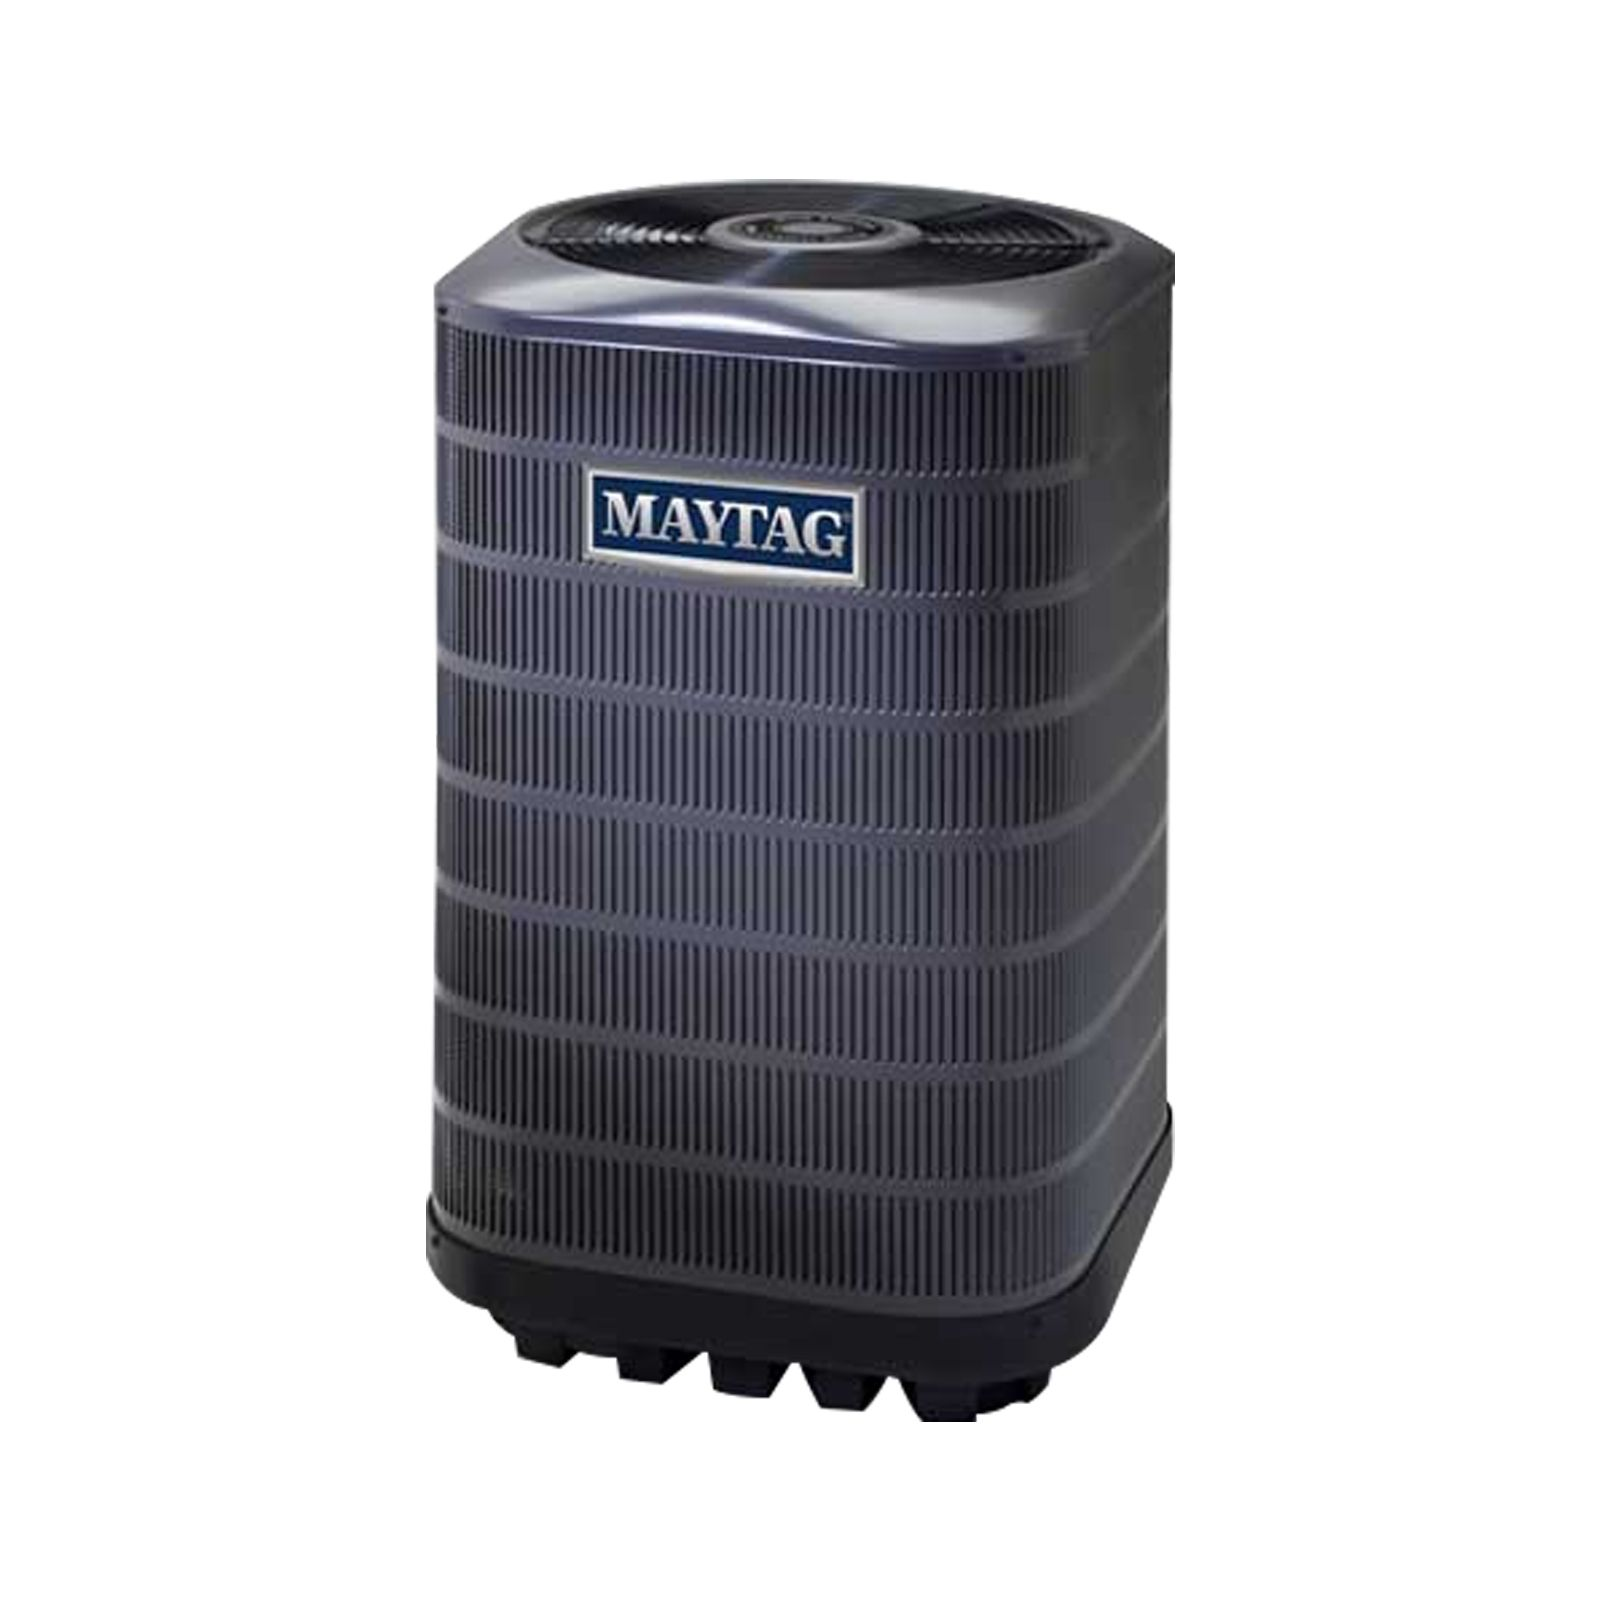 Maytag 921653L - MSA4BE048KA - 4 Ton, 14 SEER Air Conditioner Condensing Unit